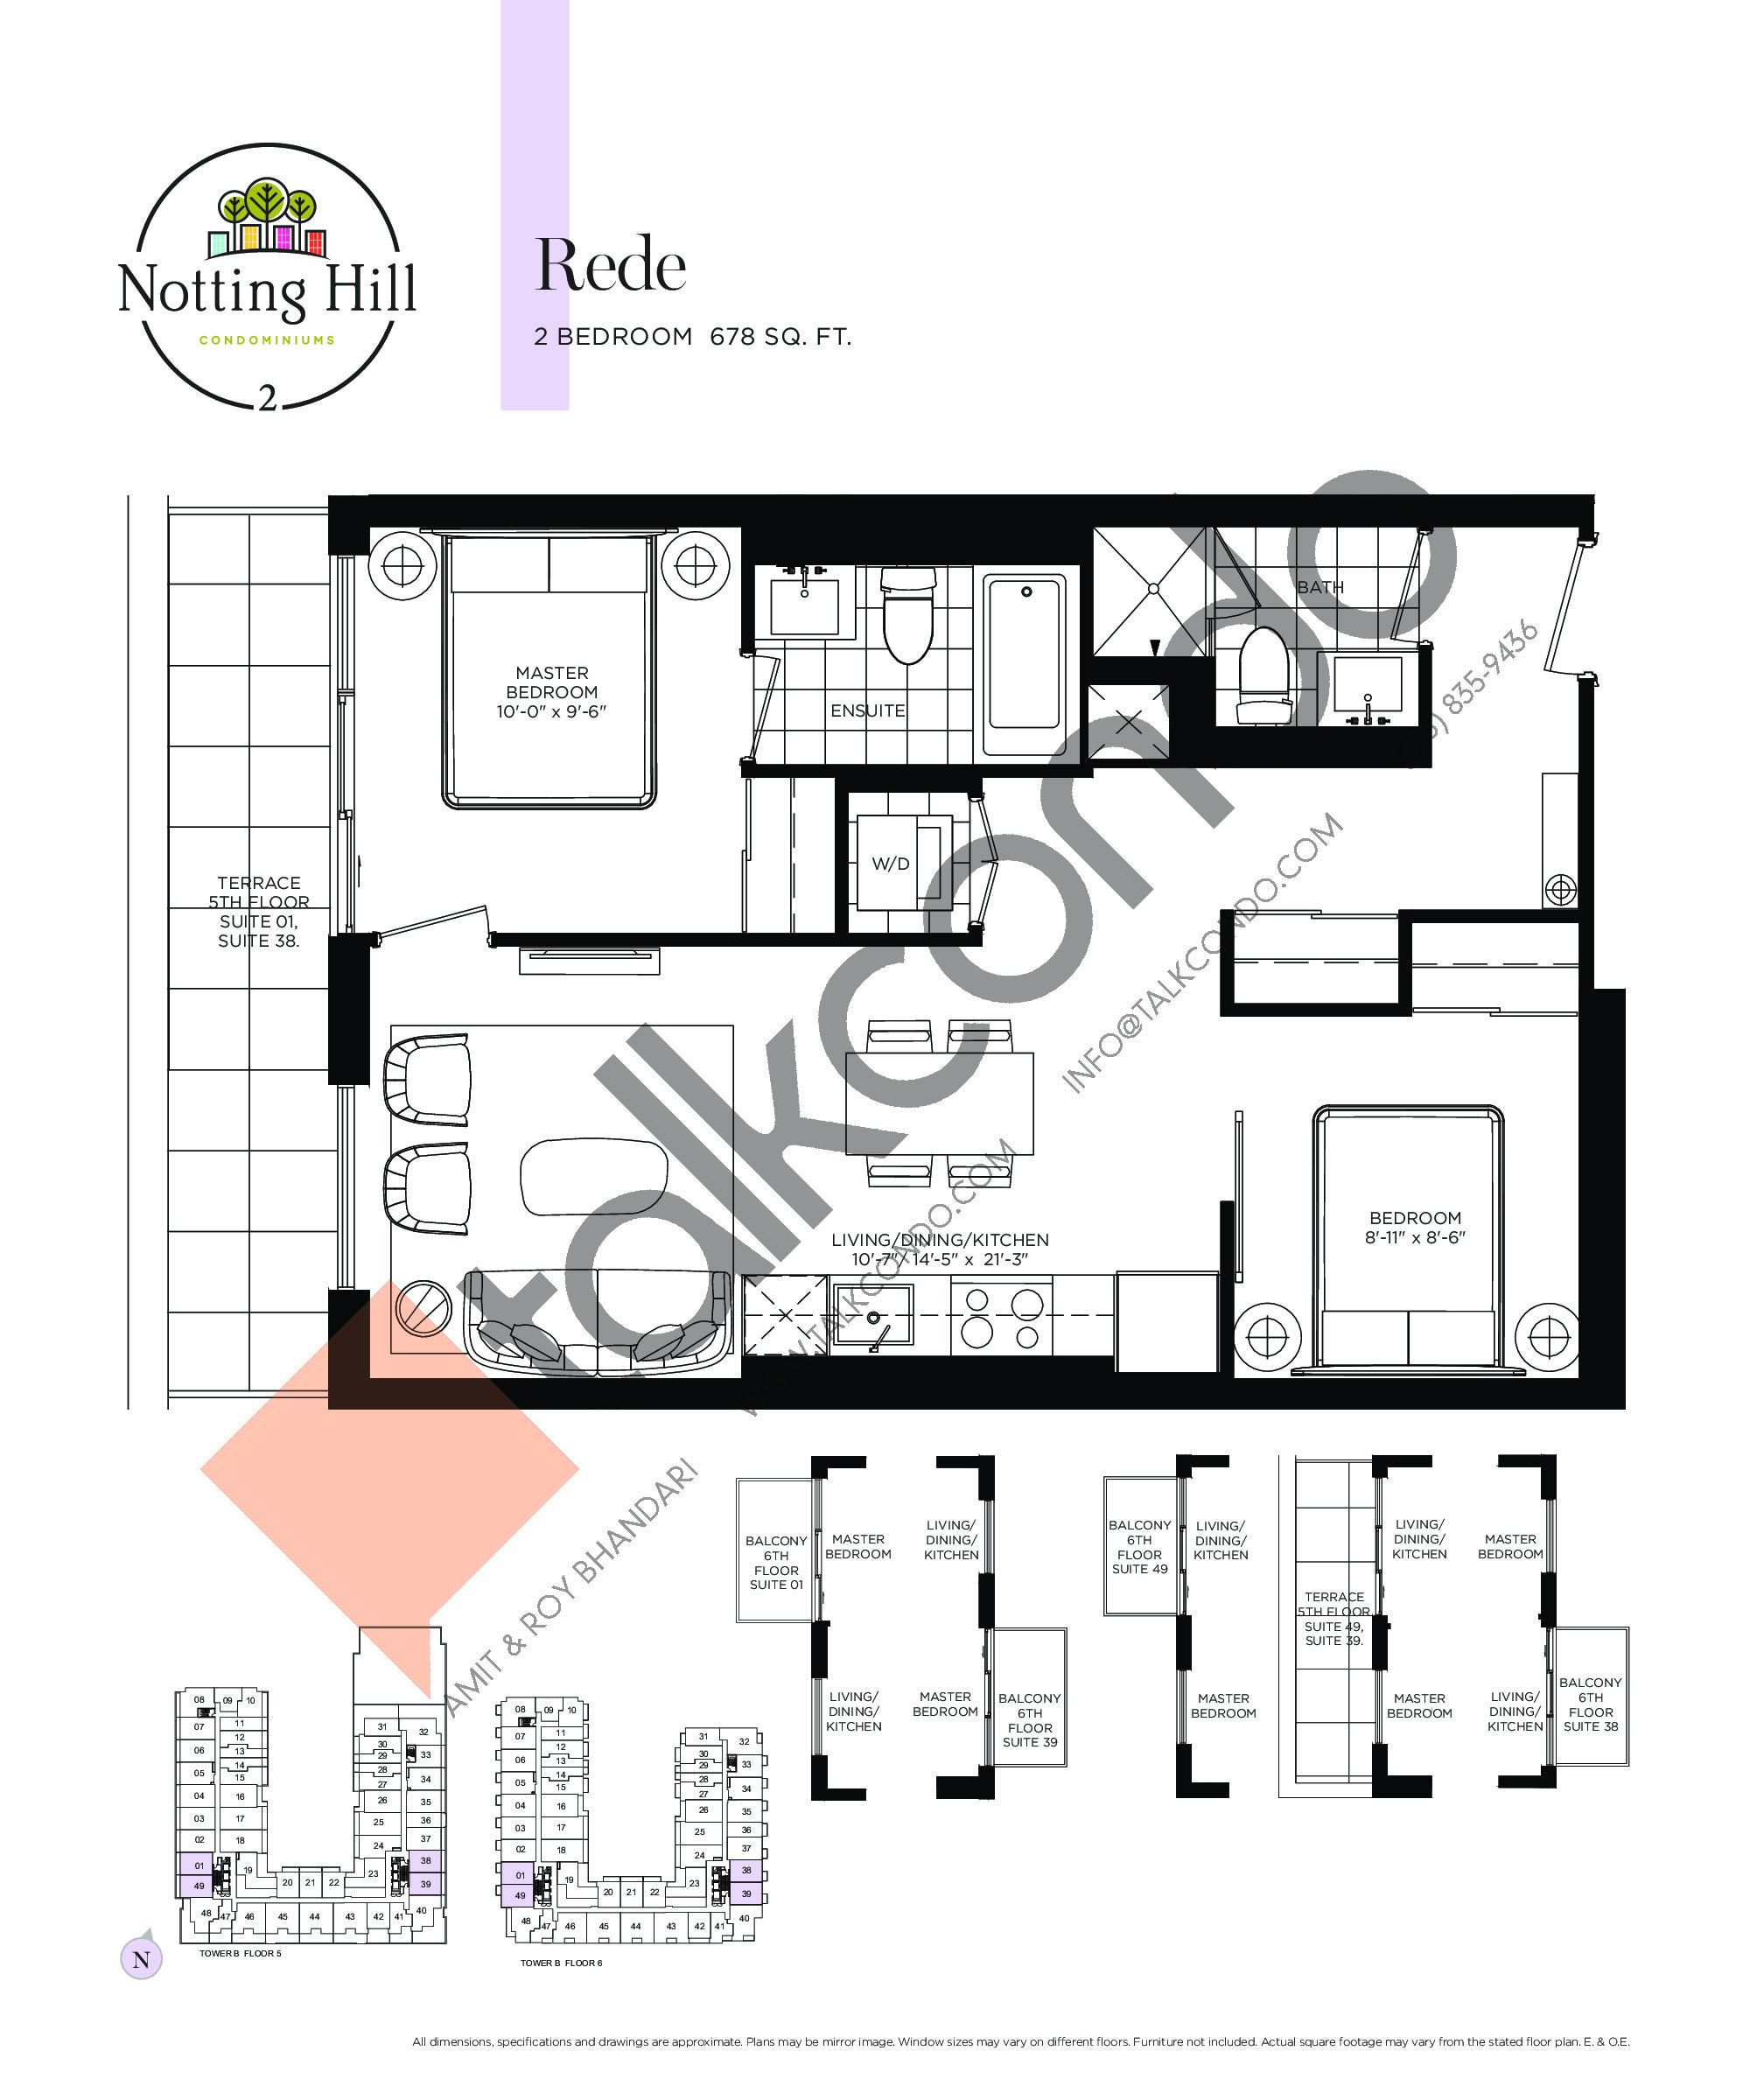 Rede Floor Plan at Notting Hill Phase 3 Condos - 678 sq.ft